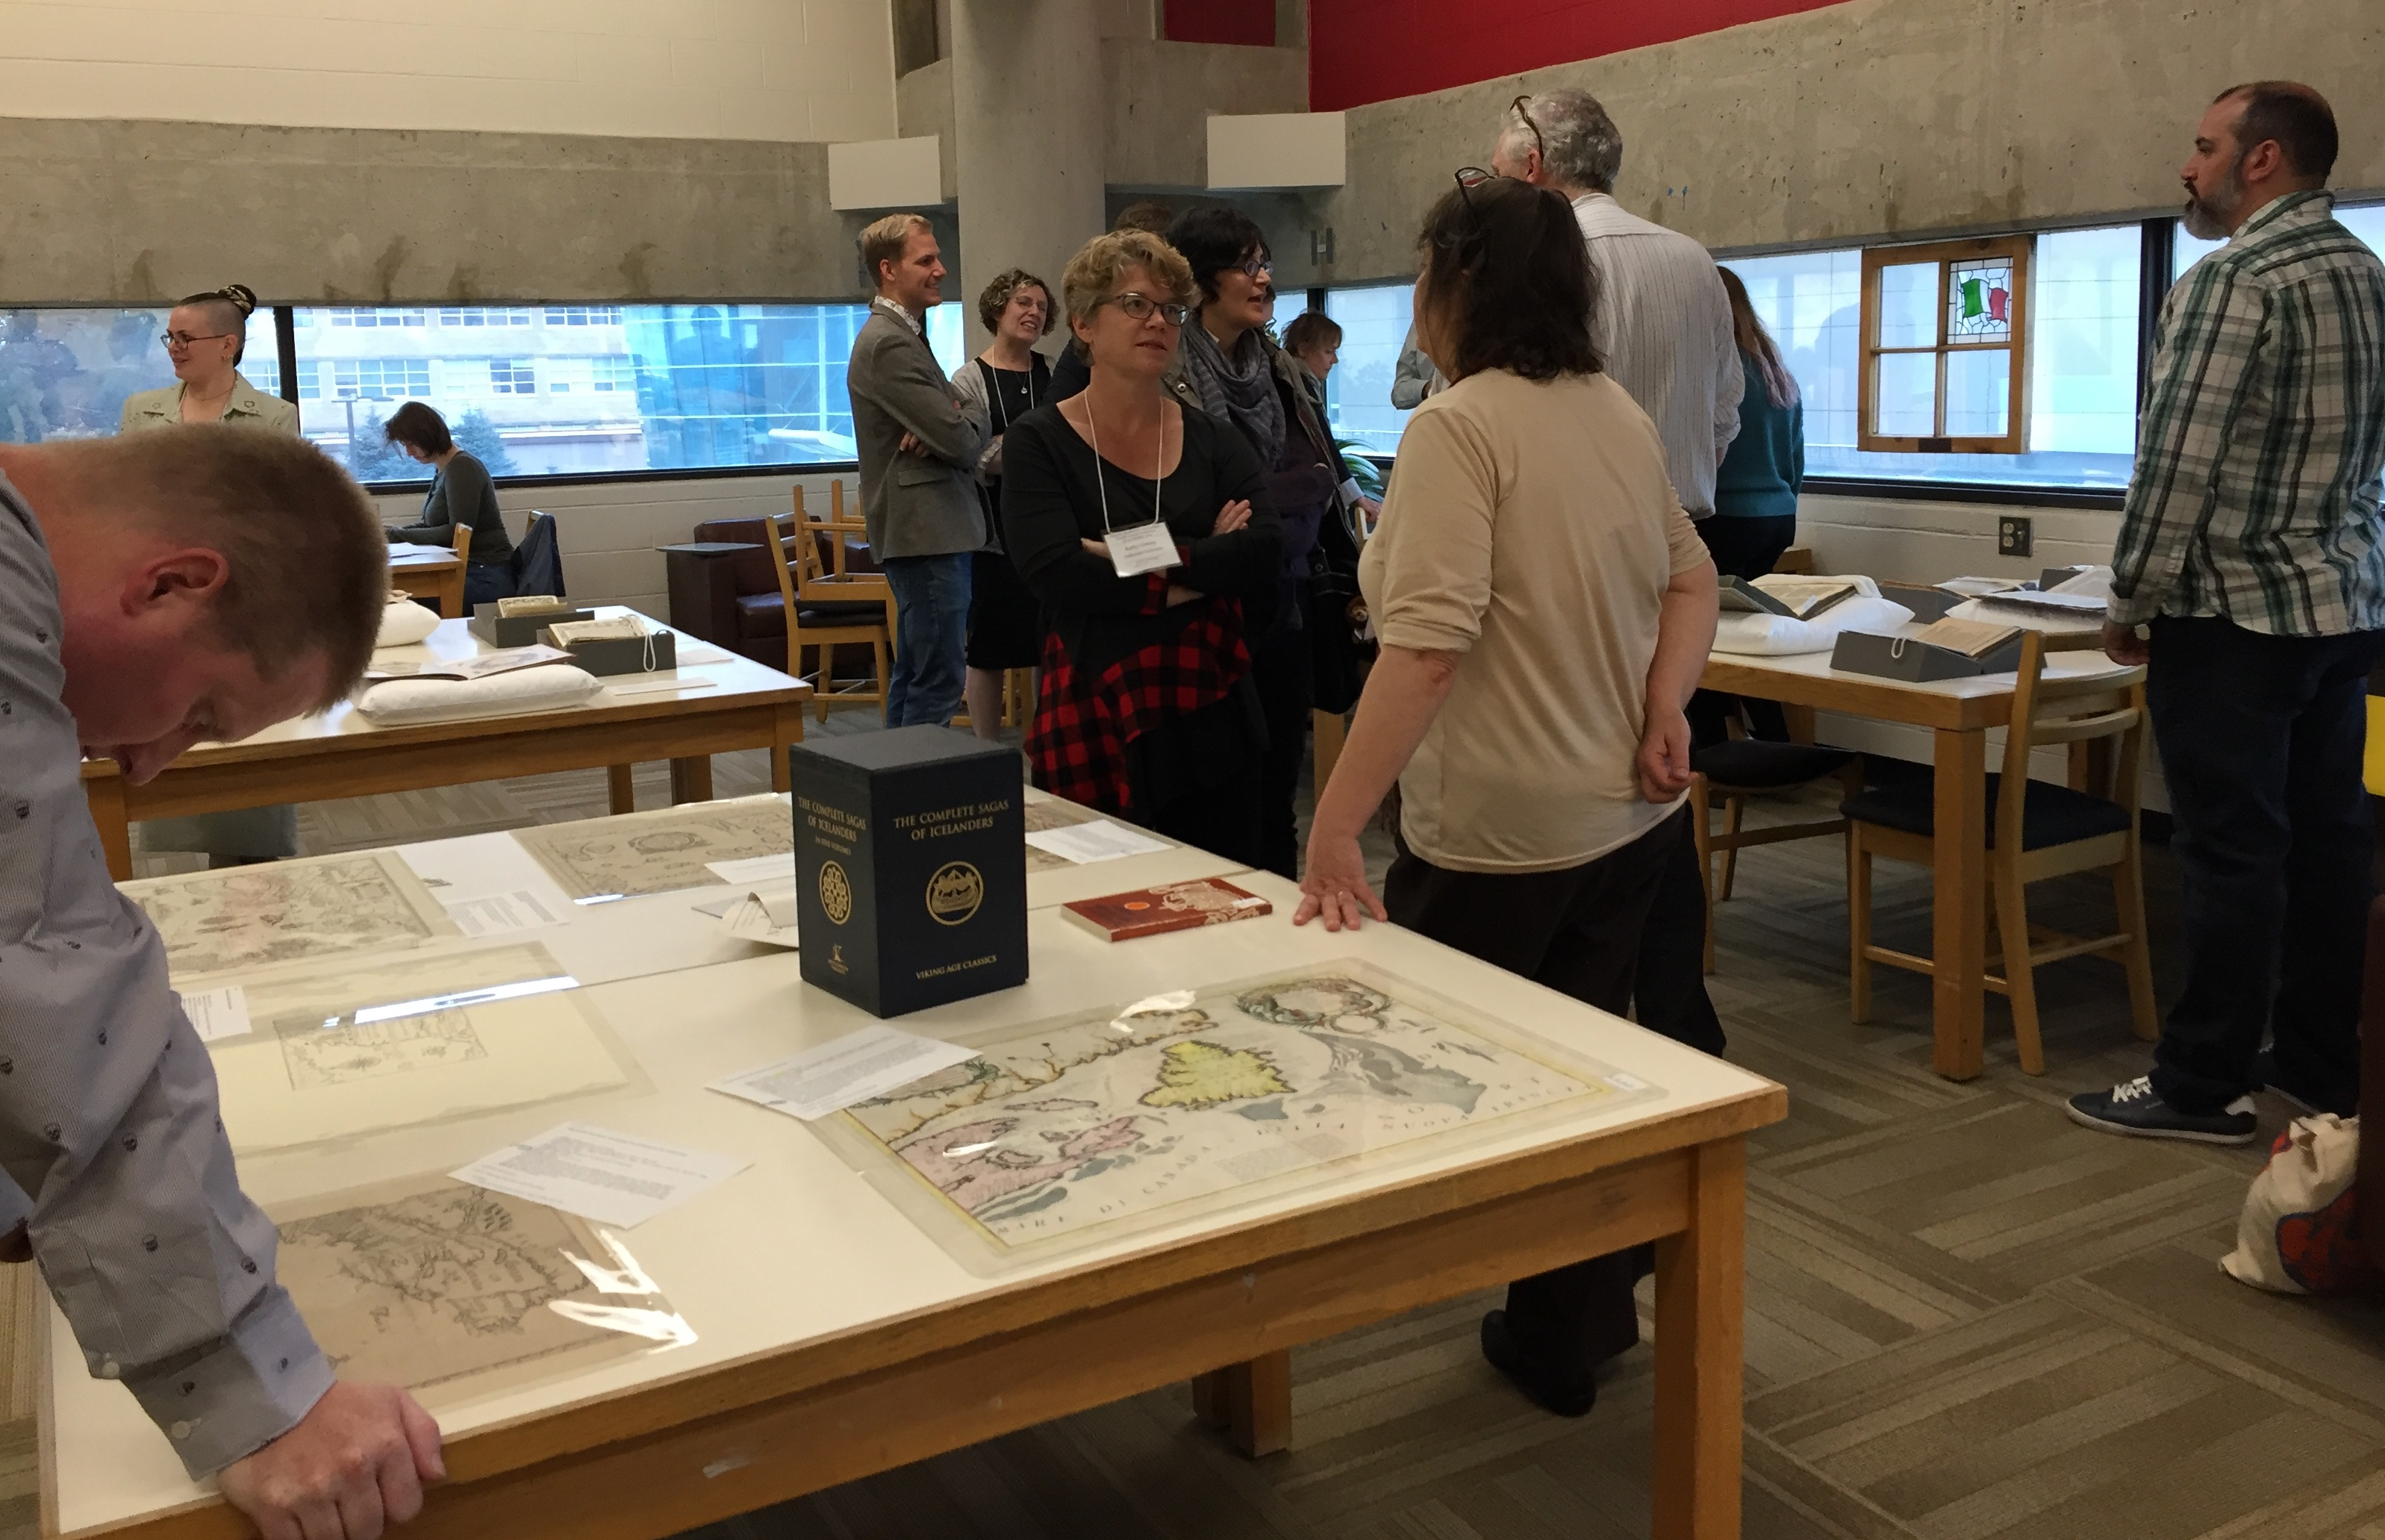 AMA conference 2019 - Discussion and debate at the MUN Library rare books, manuscript, and incunabula workshop.